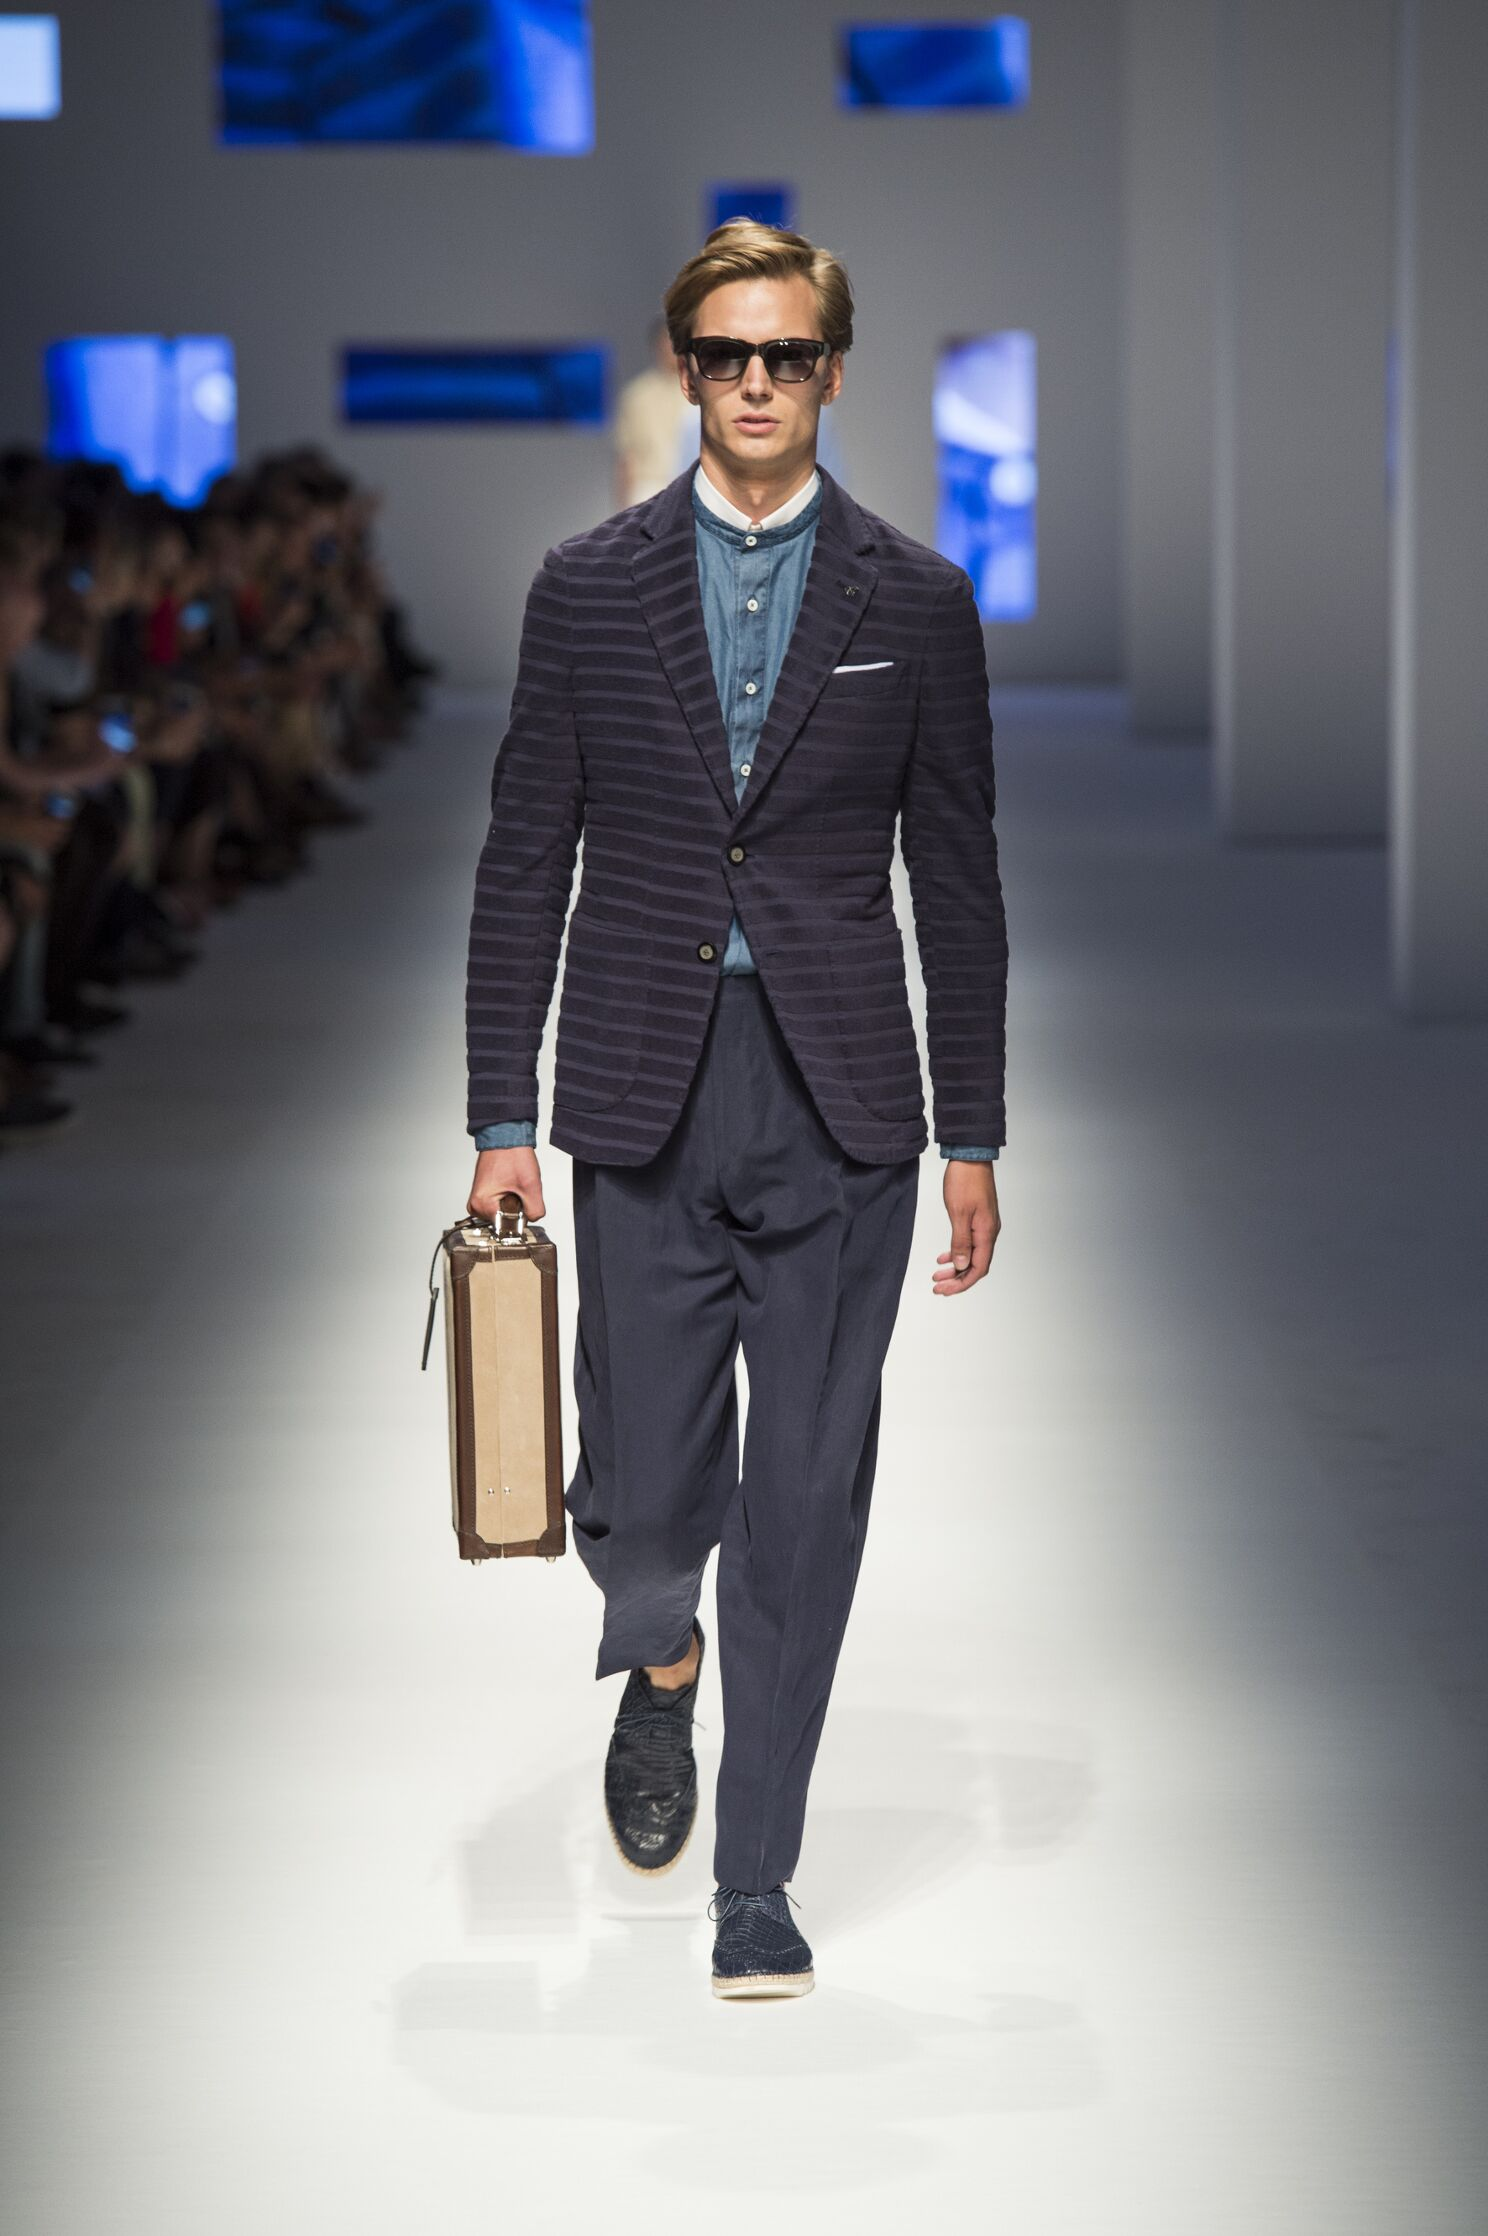 Canali Spring Summer 2016 Menswear Collection Milan Fashion Week Fashion Show